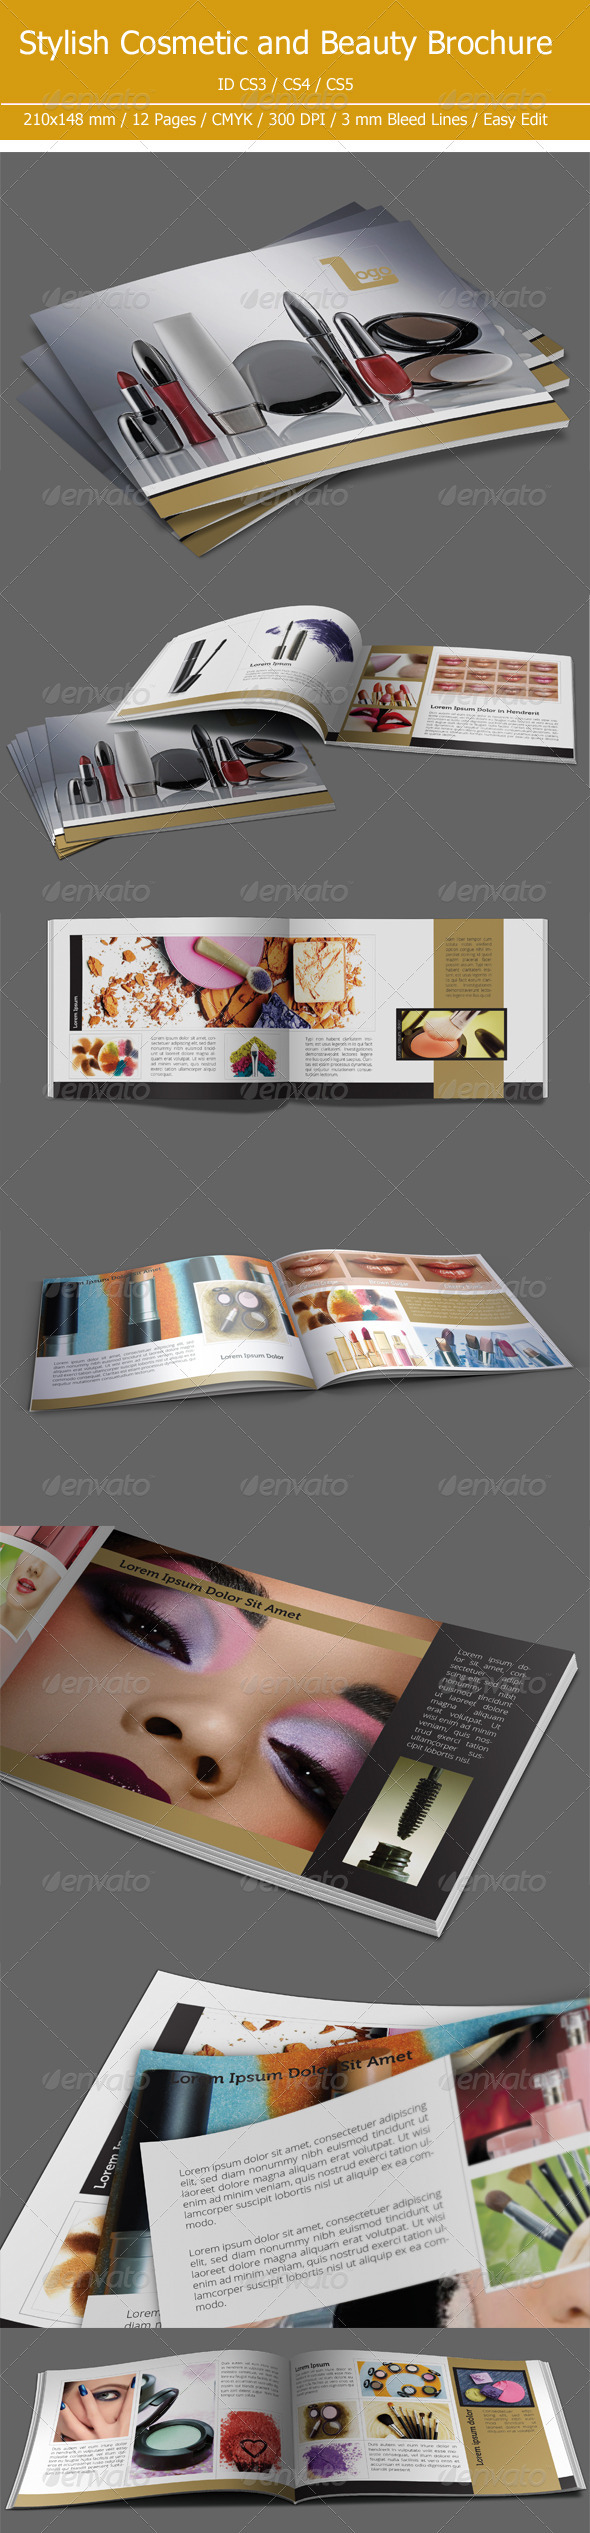 Cosmetic &amp; Beauty Brochure - Brochures Print Templates